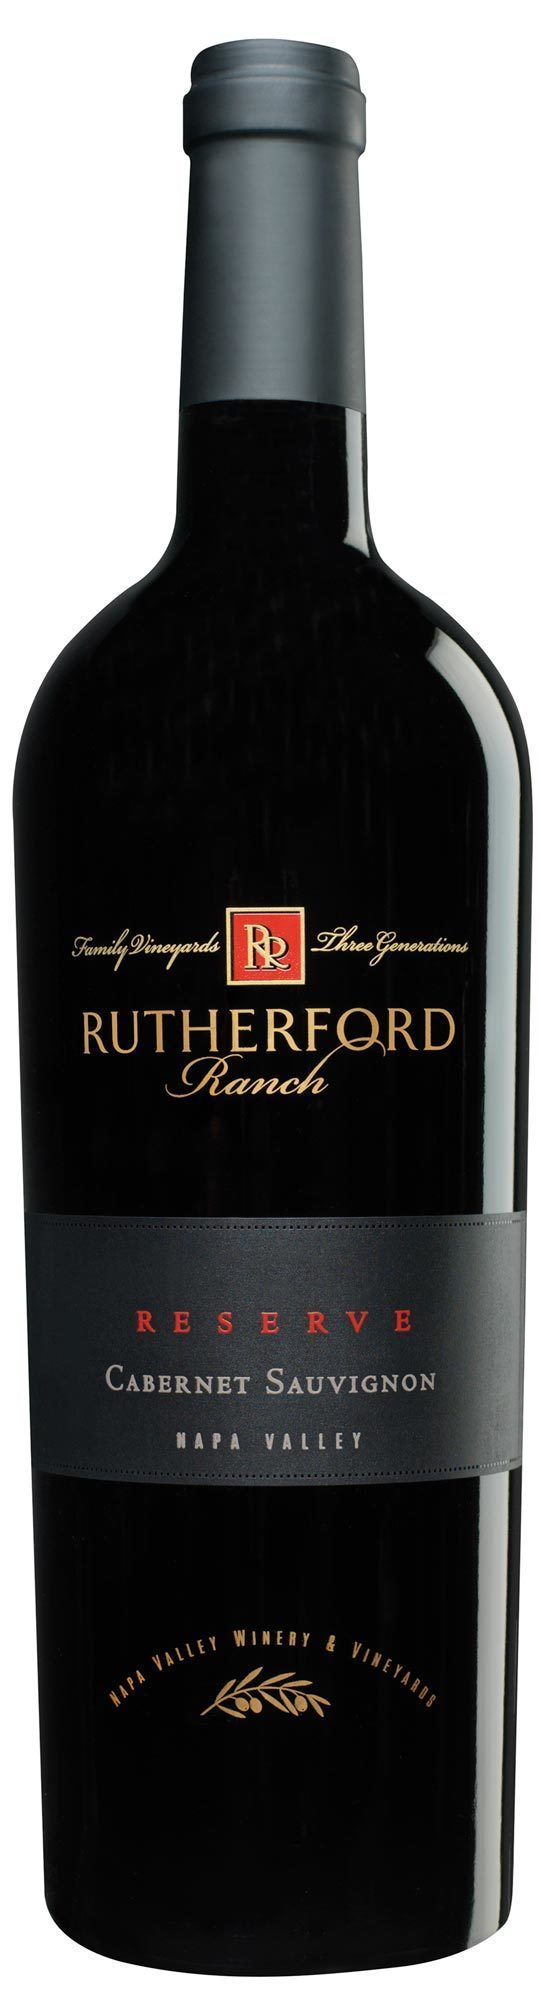 Rutherford Ranch Cabernet Sauvignon Reserve Napa 2017 750ml